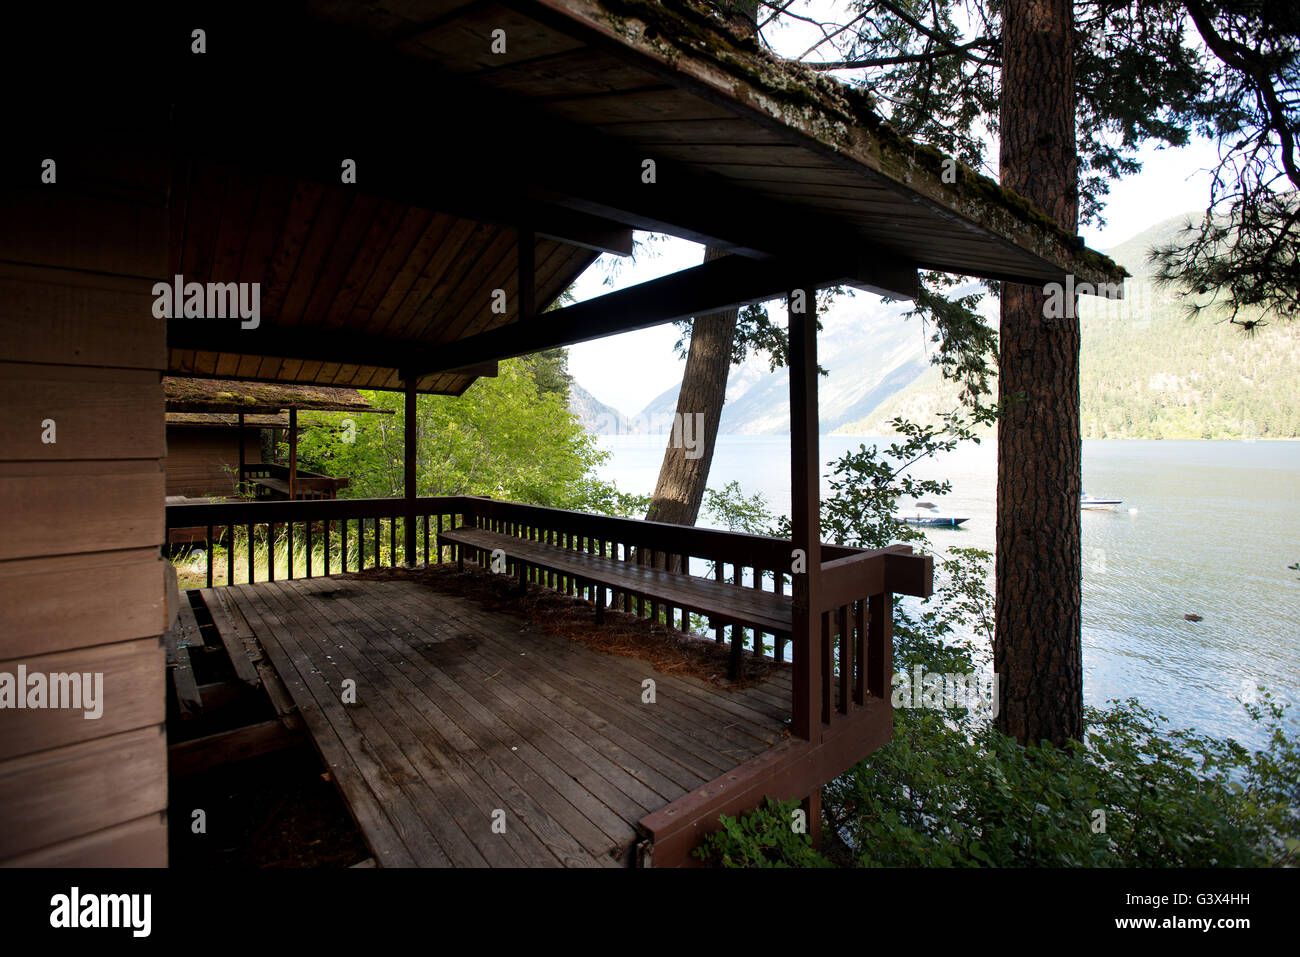 Abandoned cabin, D'Arcy, near Anderson Lake, British Columbia, Canada - Stock Image